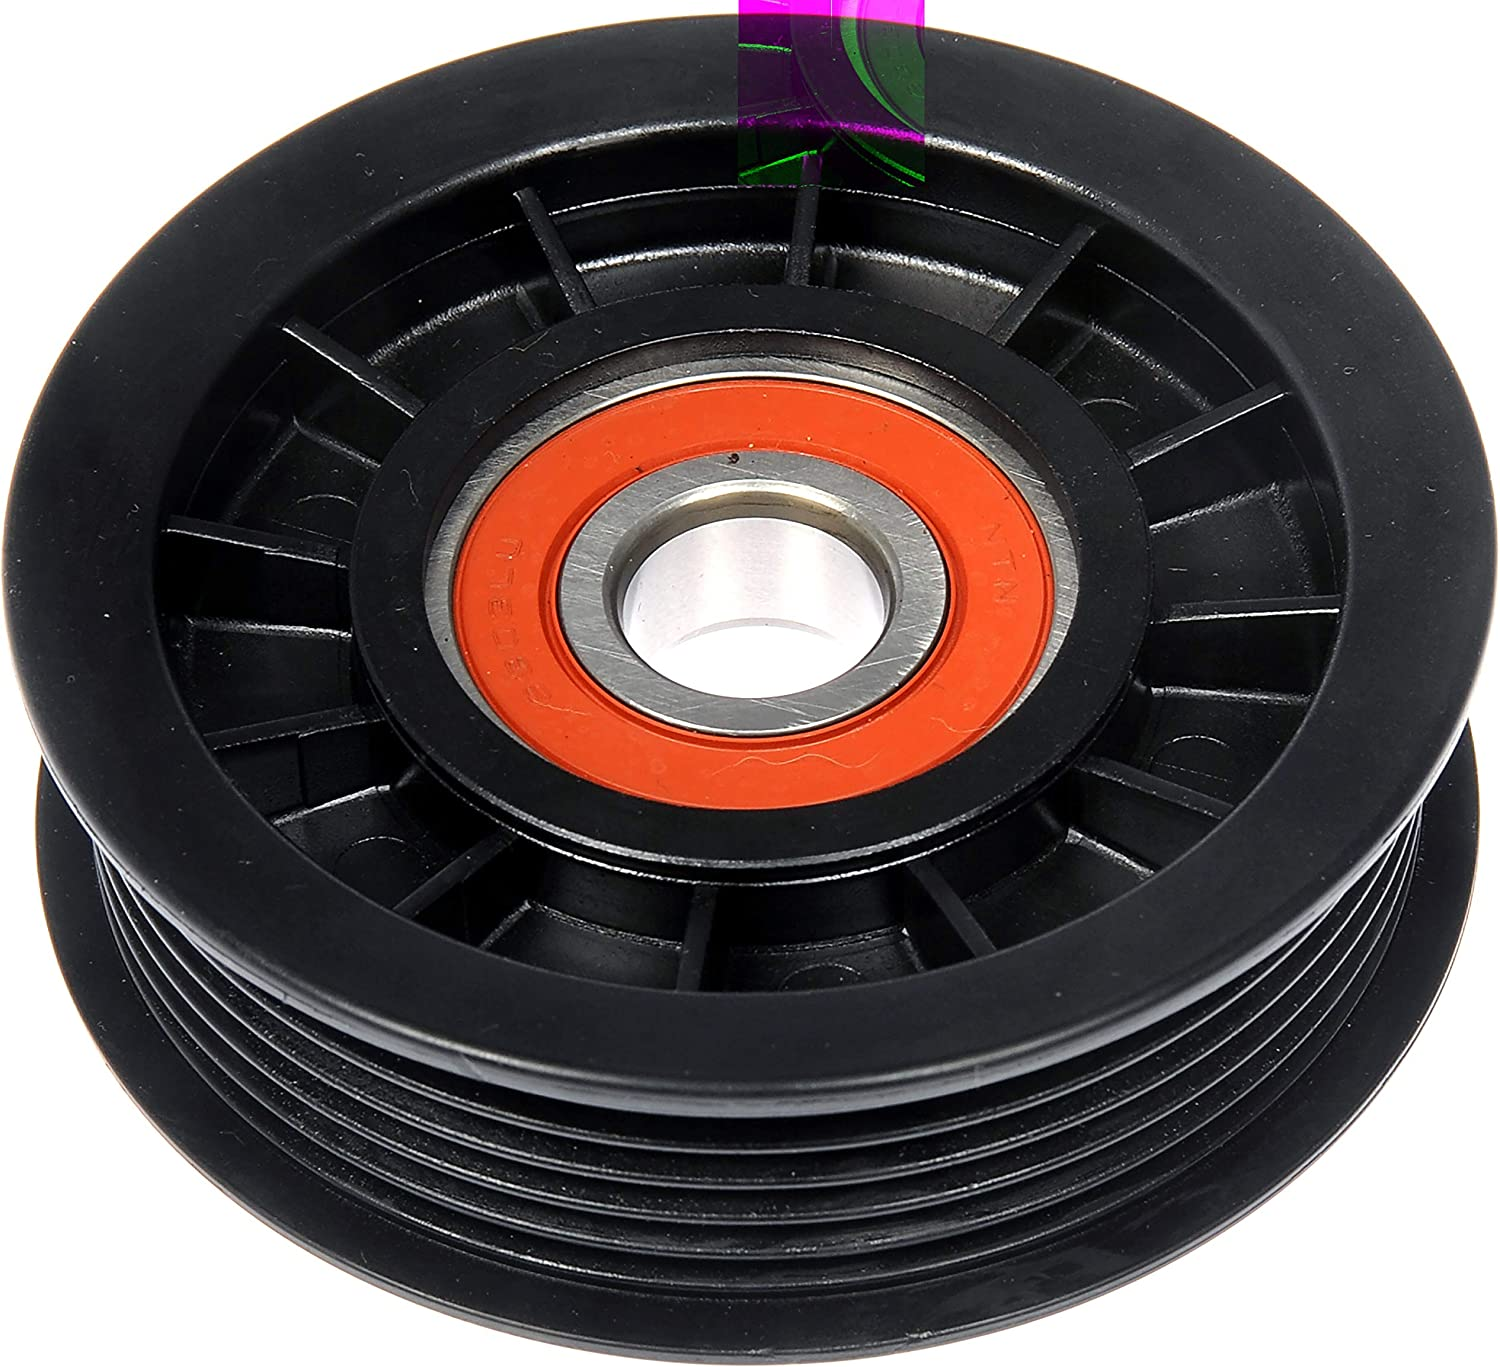 Dorman Free shipping anywhere in the nation 419-675 Accessory Time sale Drive Belt Mode Idler Select for Pulley